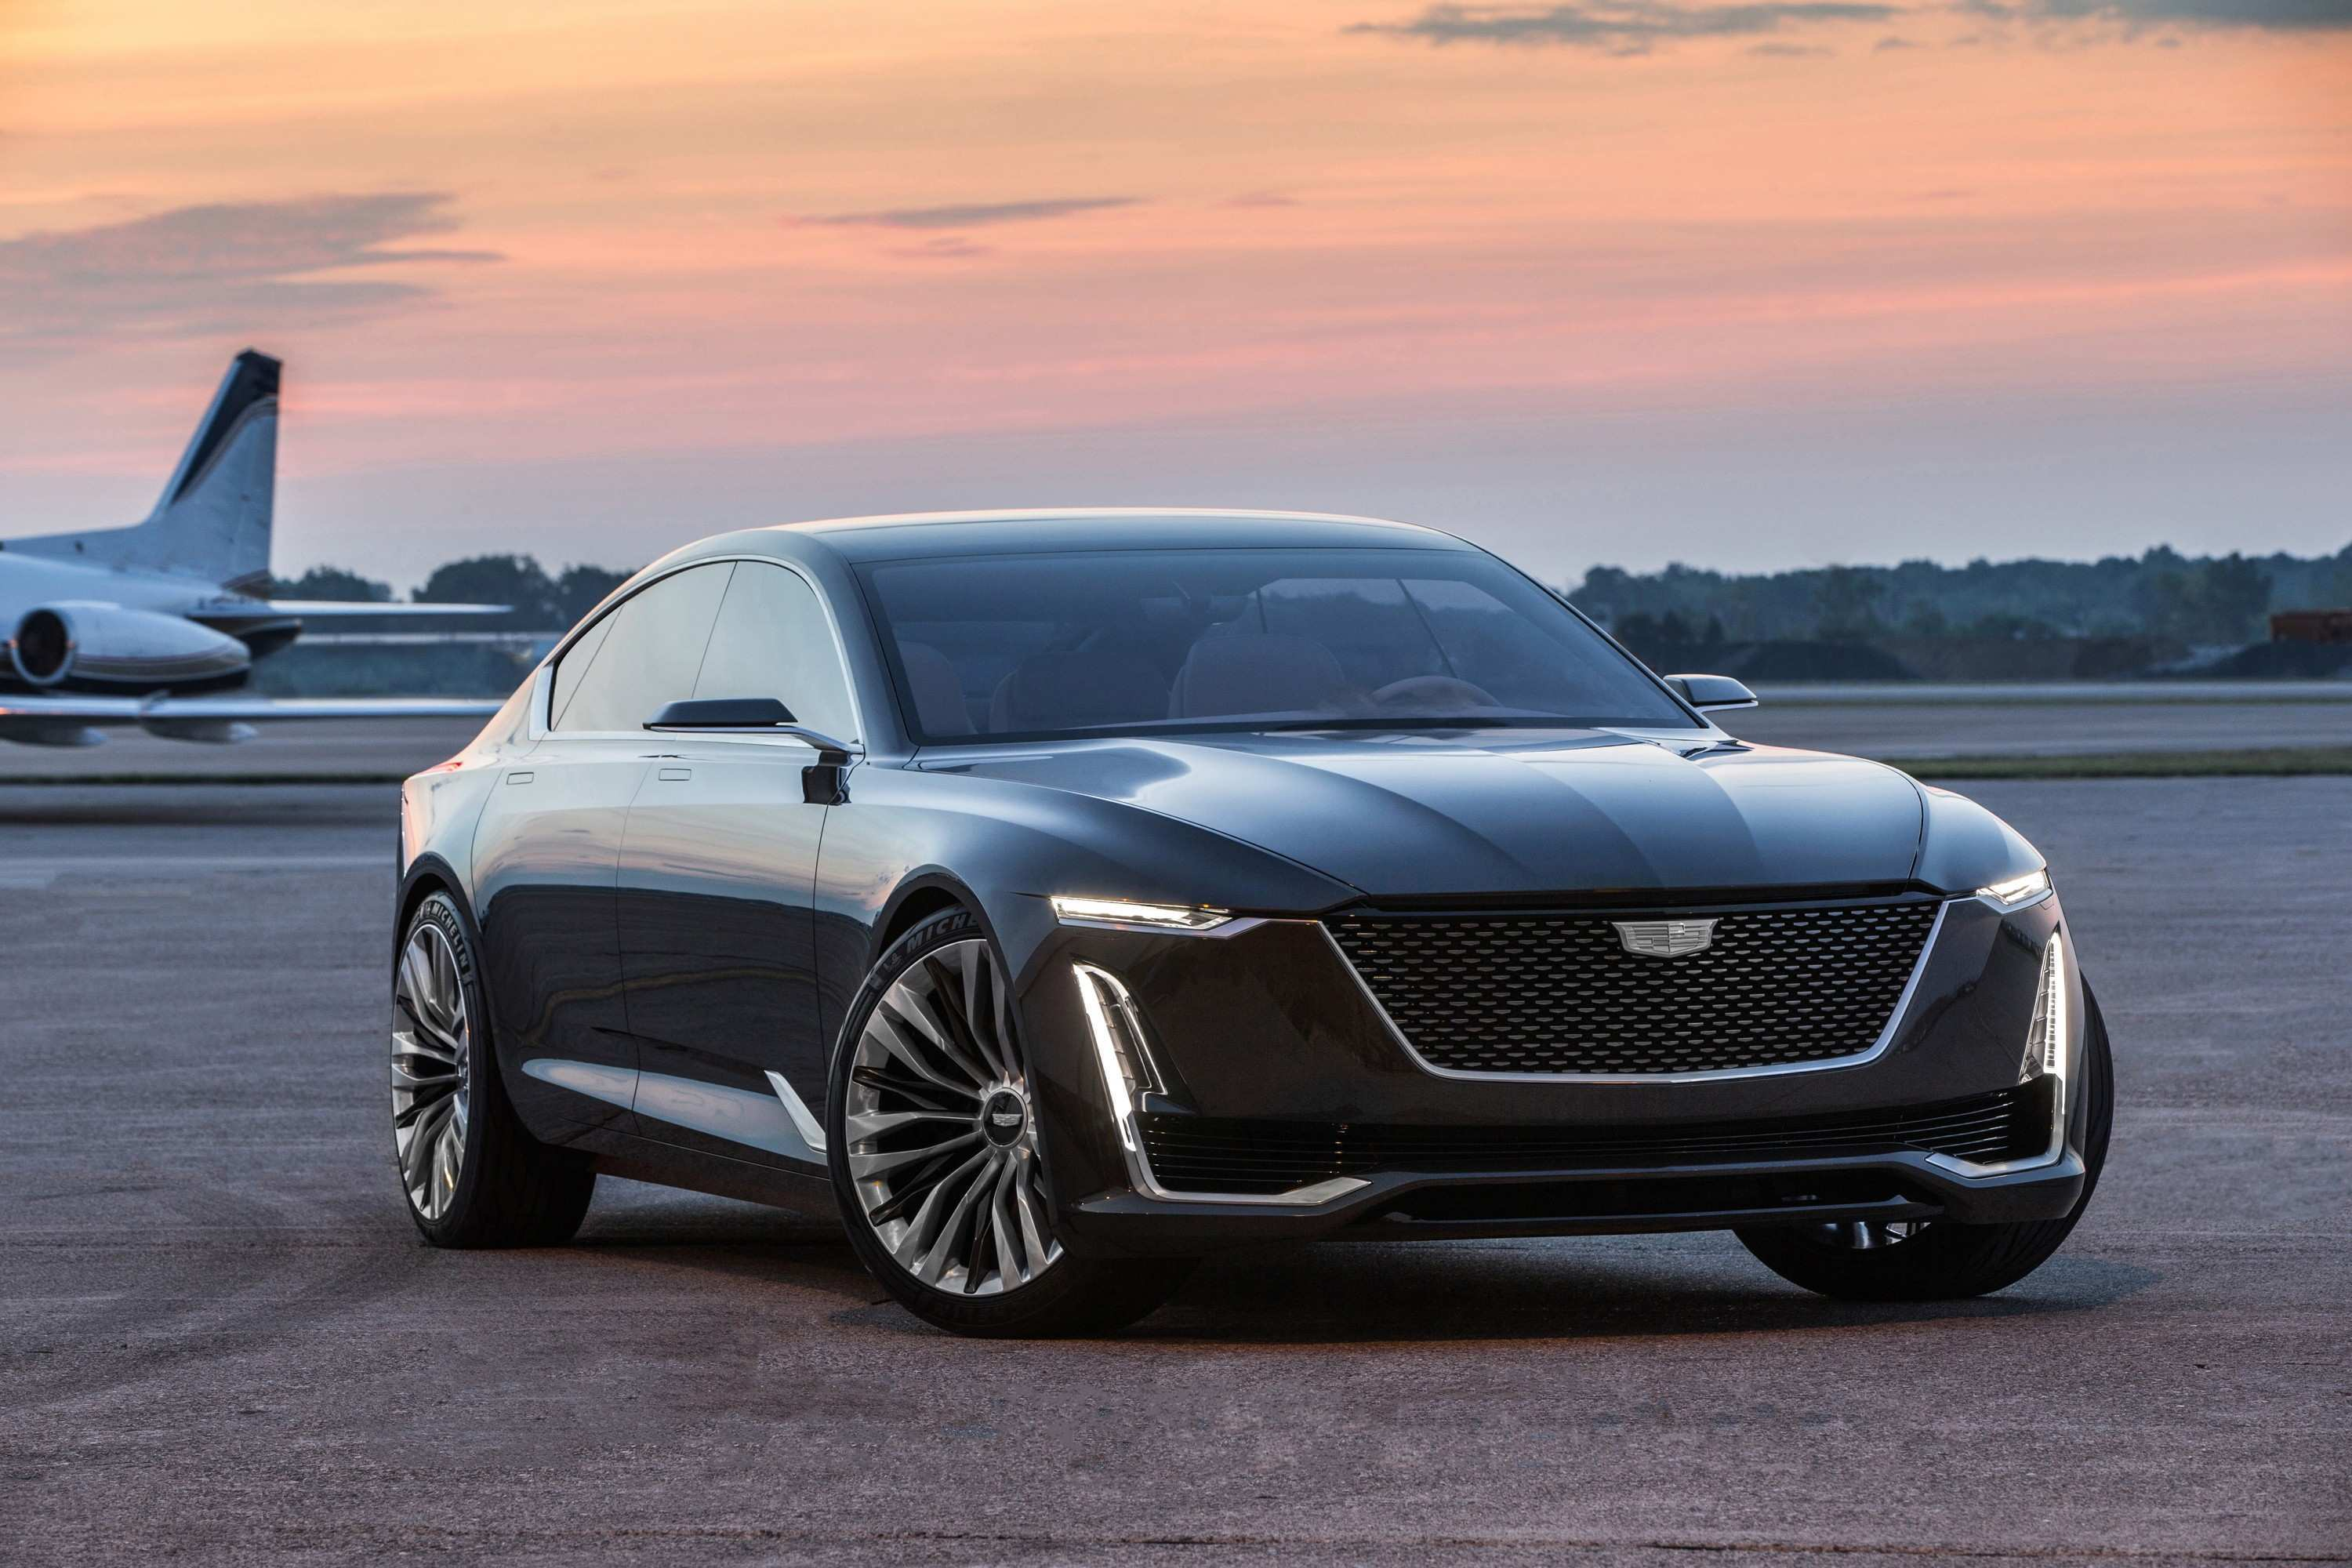 70 New 2020 Cadillac CTS V Performance by 2020 Cadillac CTS V